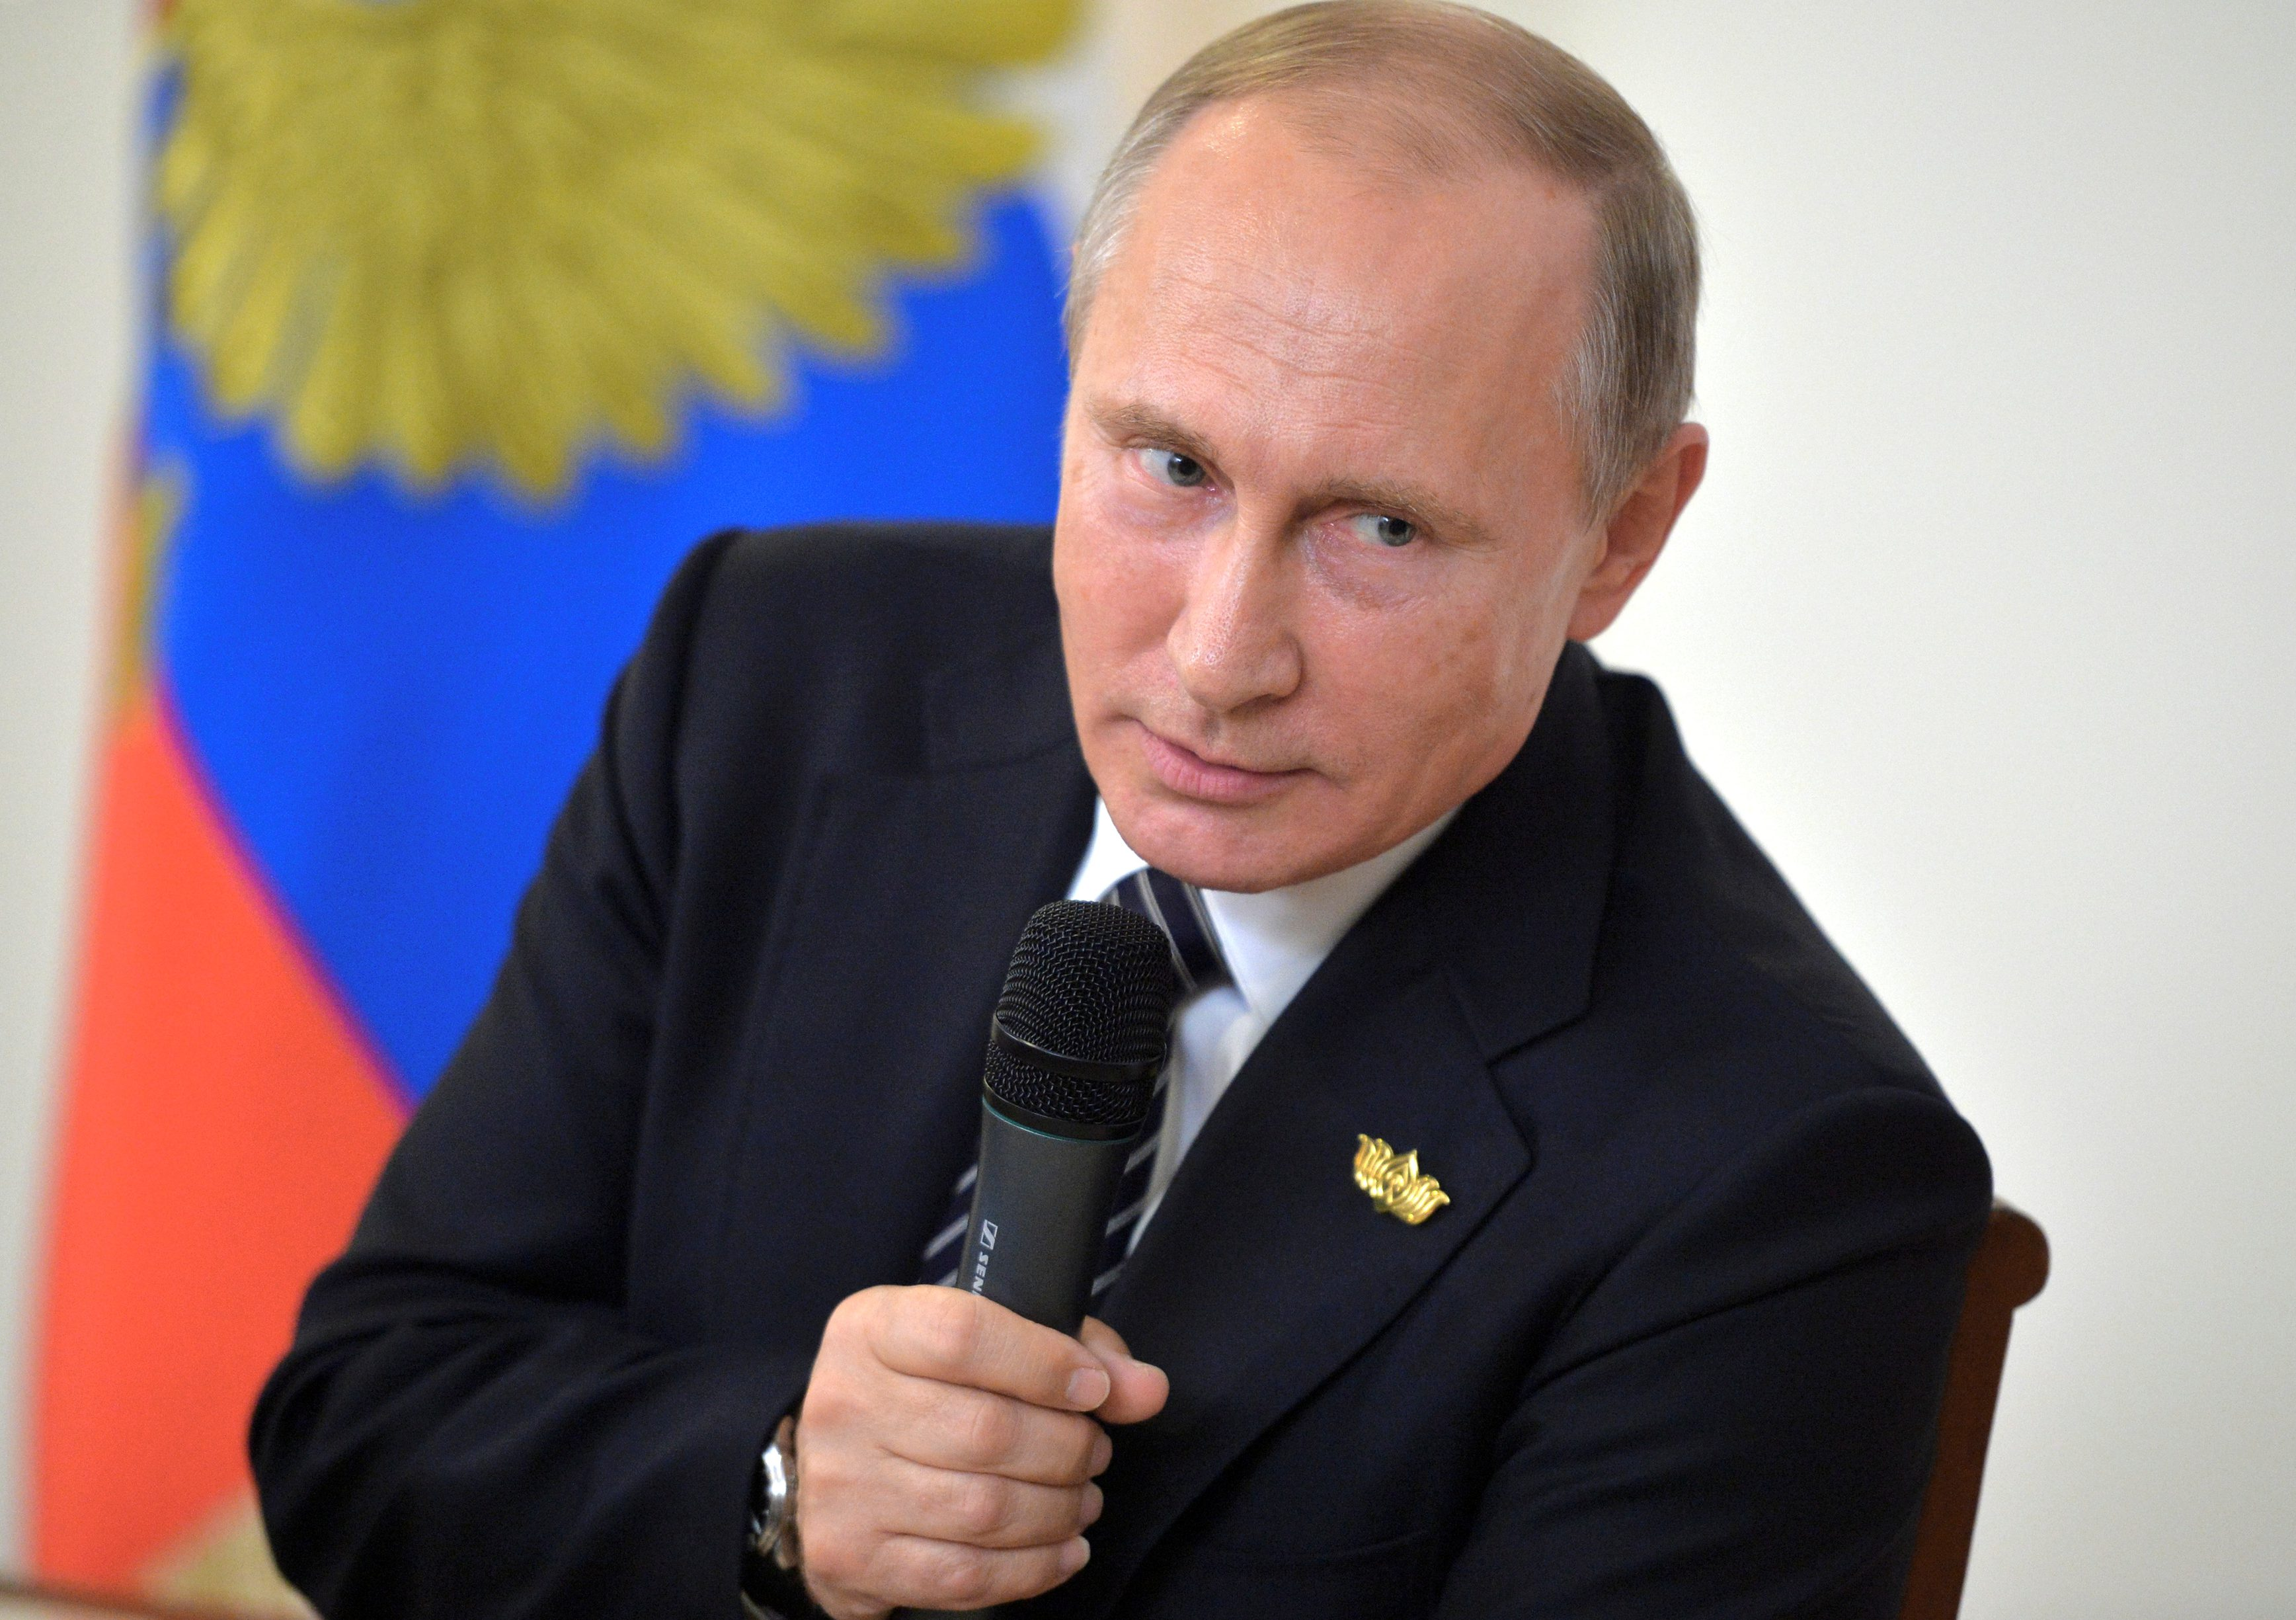 Russian President Vladimir Putin speaks during a news conference following the BRICS (Brazil, Russia, India, China and South Africa) Summit in the western state of Goa, India, October 16, 2016.